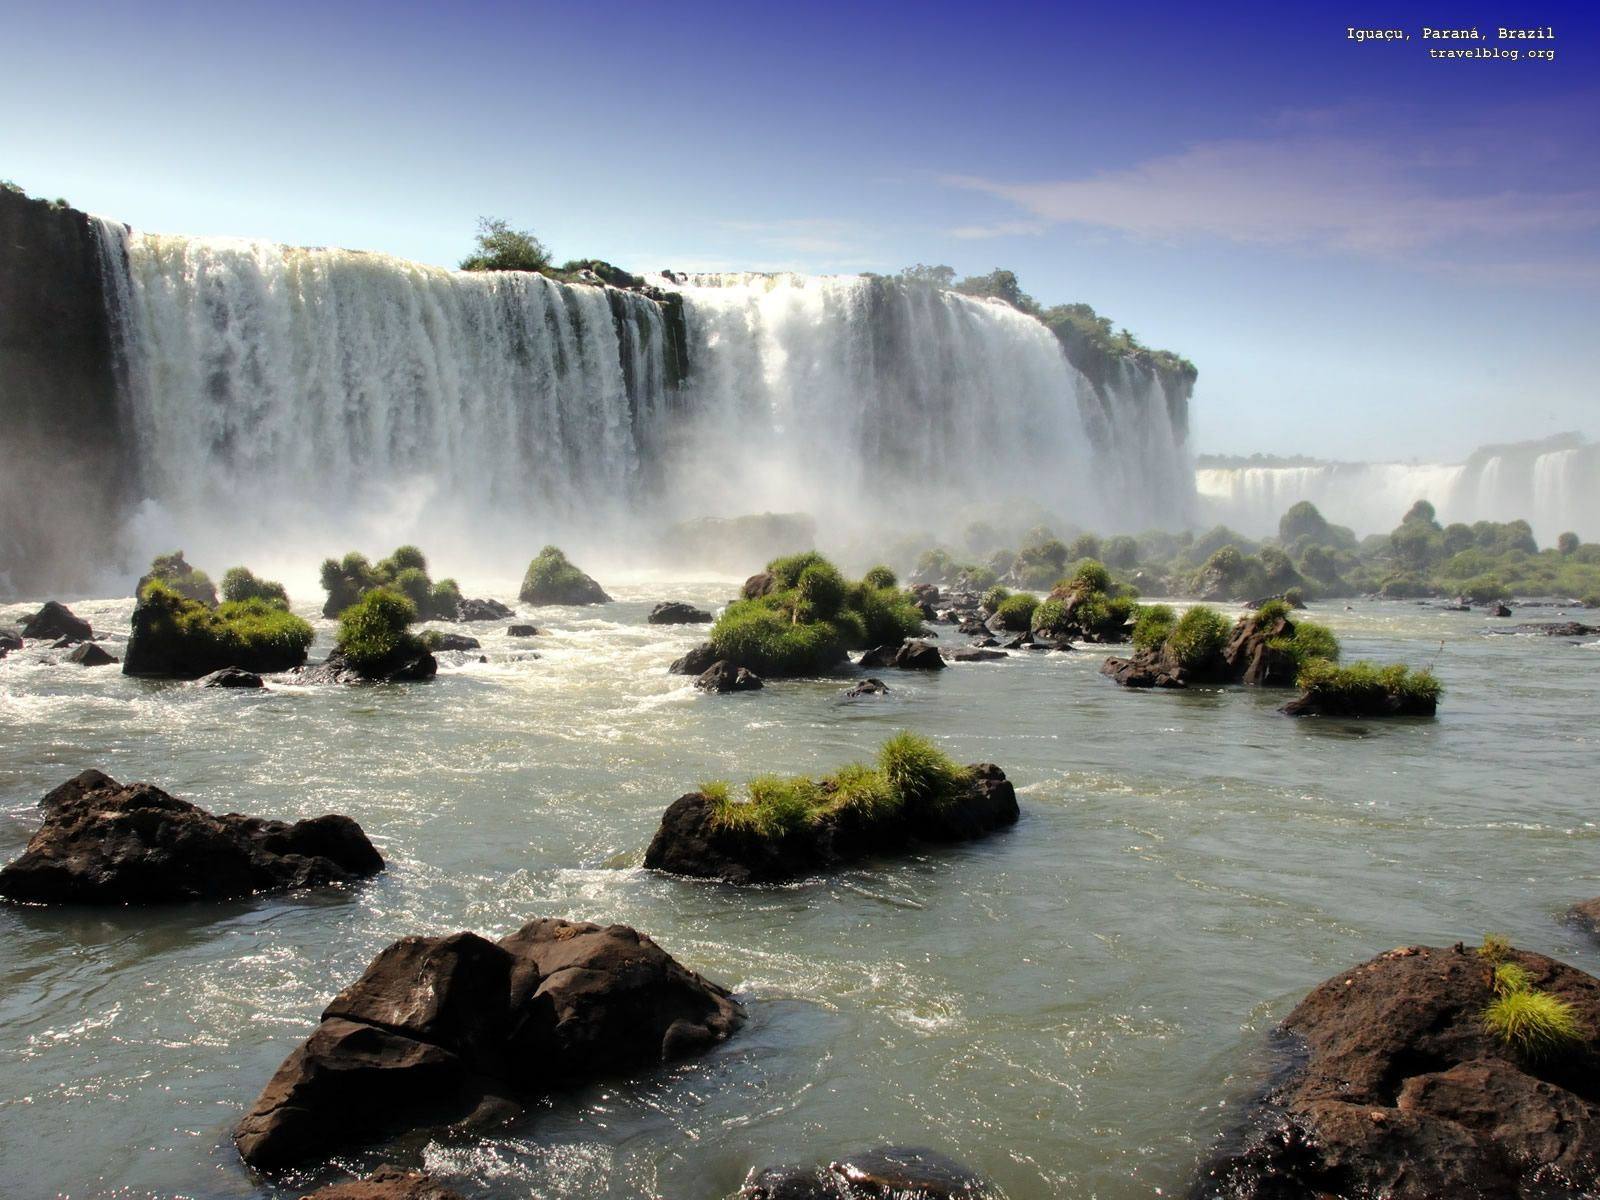 Desktop Hd Animation Photos Moving Wallpapers Waterfall Wallpaper Free Screensavers And Wallpapers